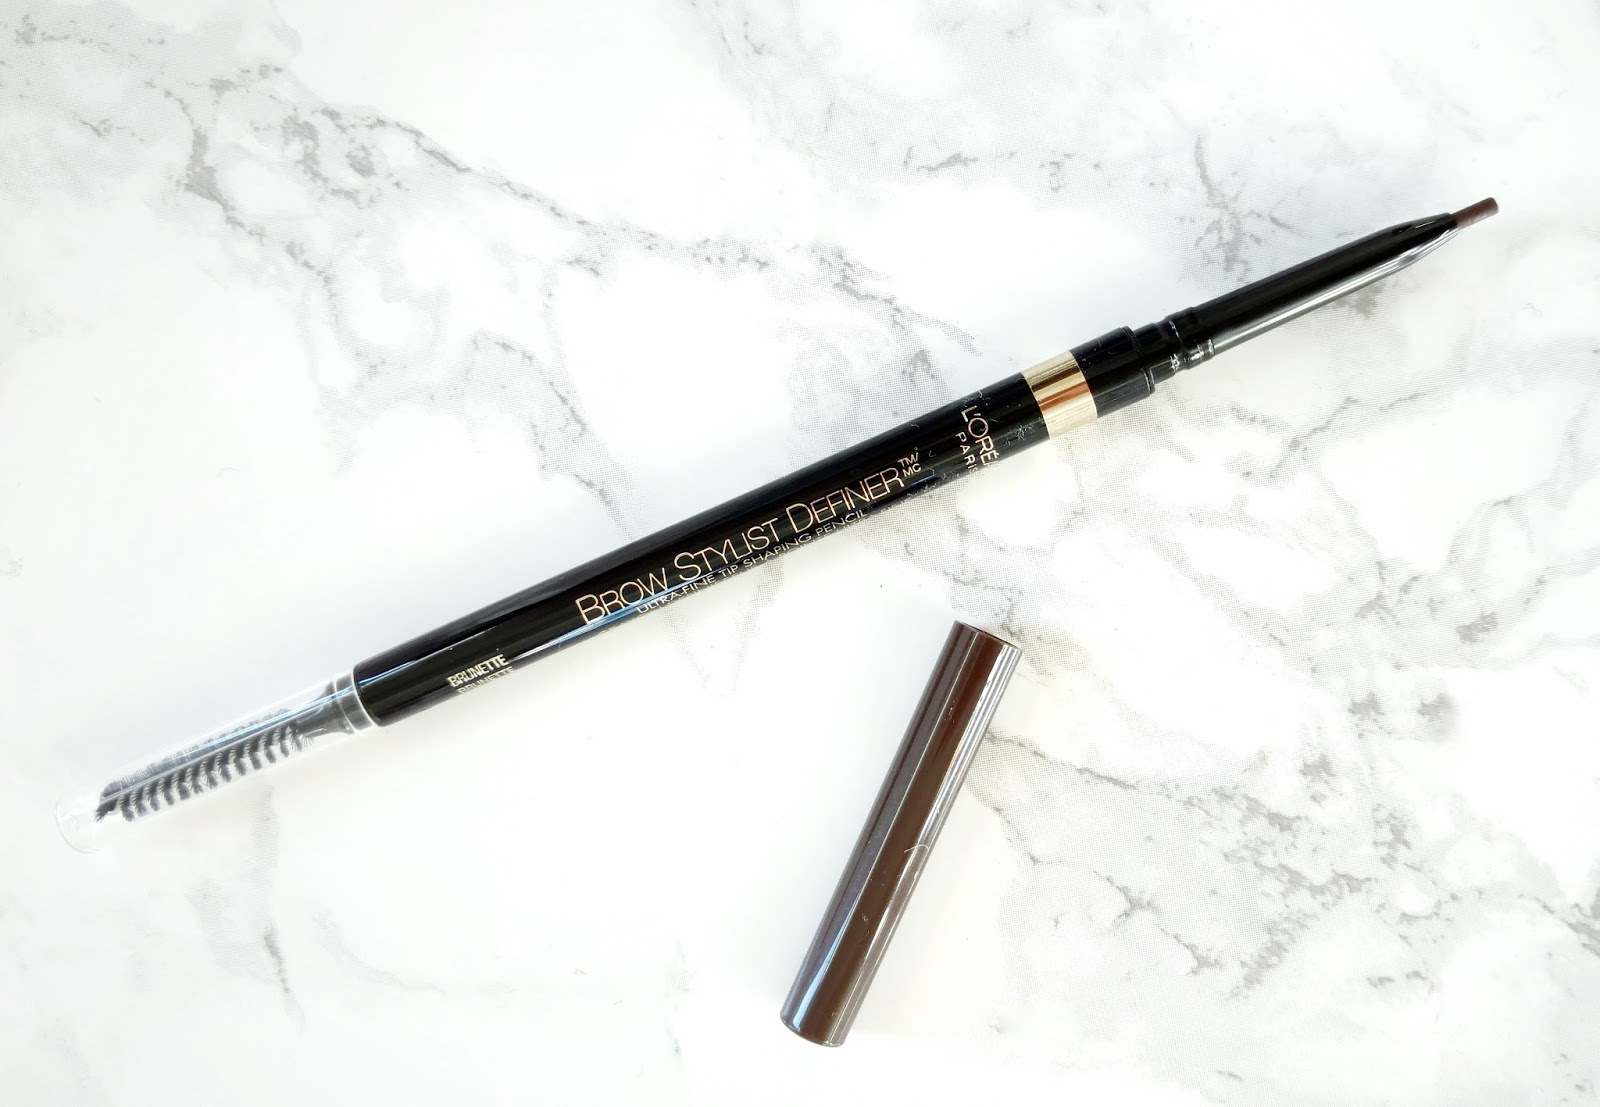 L'Oreal Brow Stylist Definer